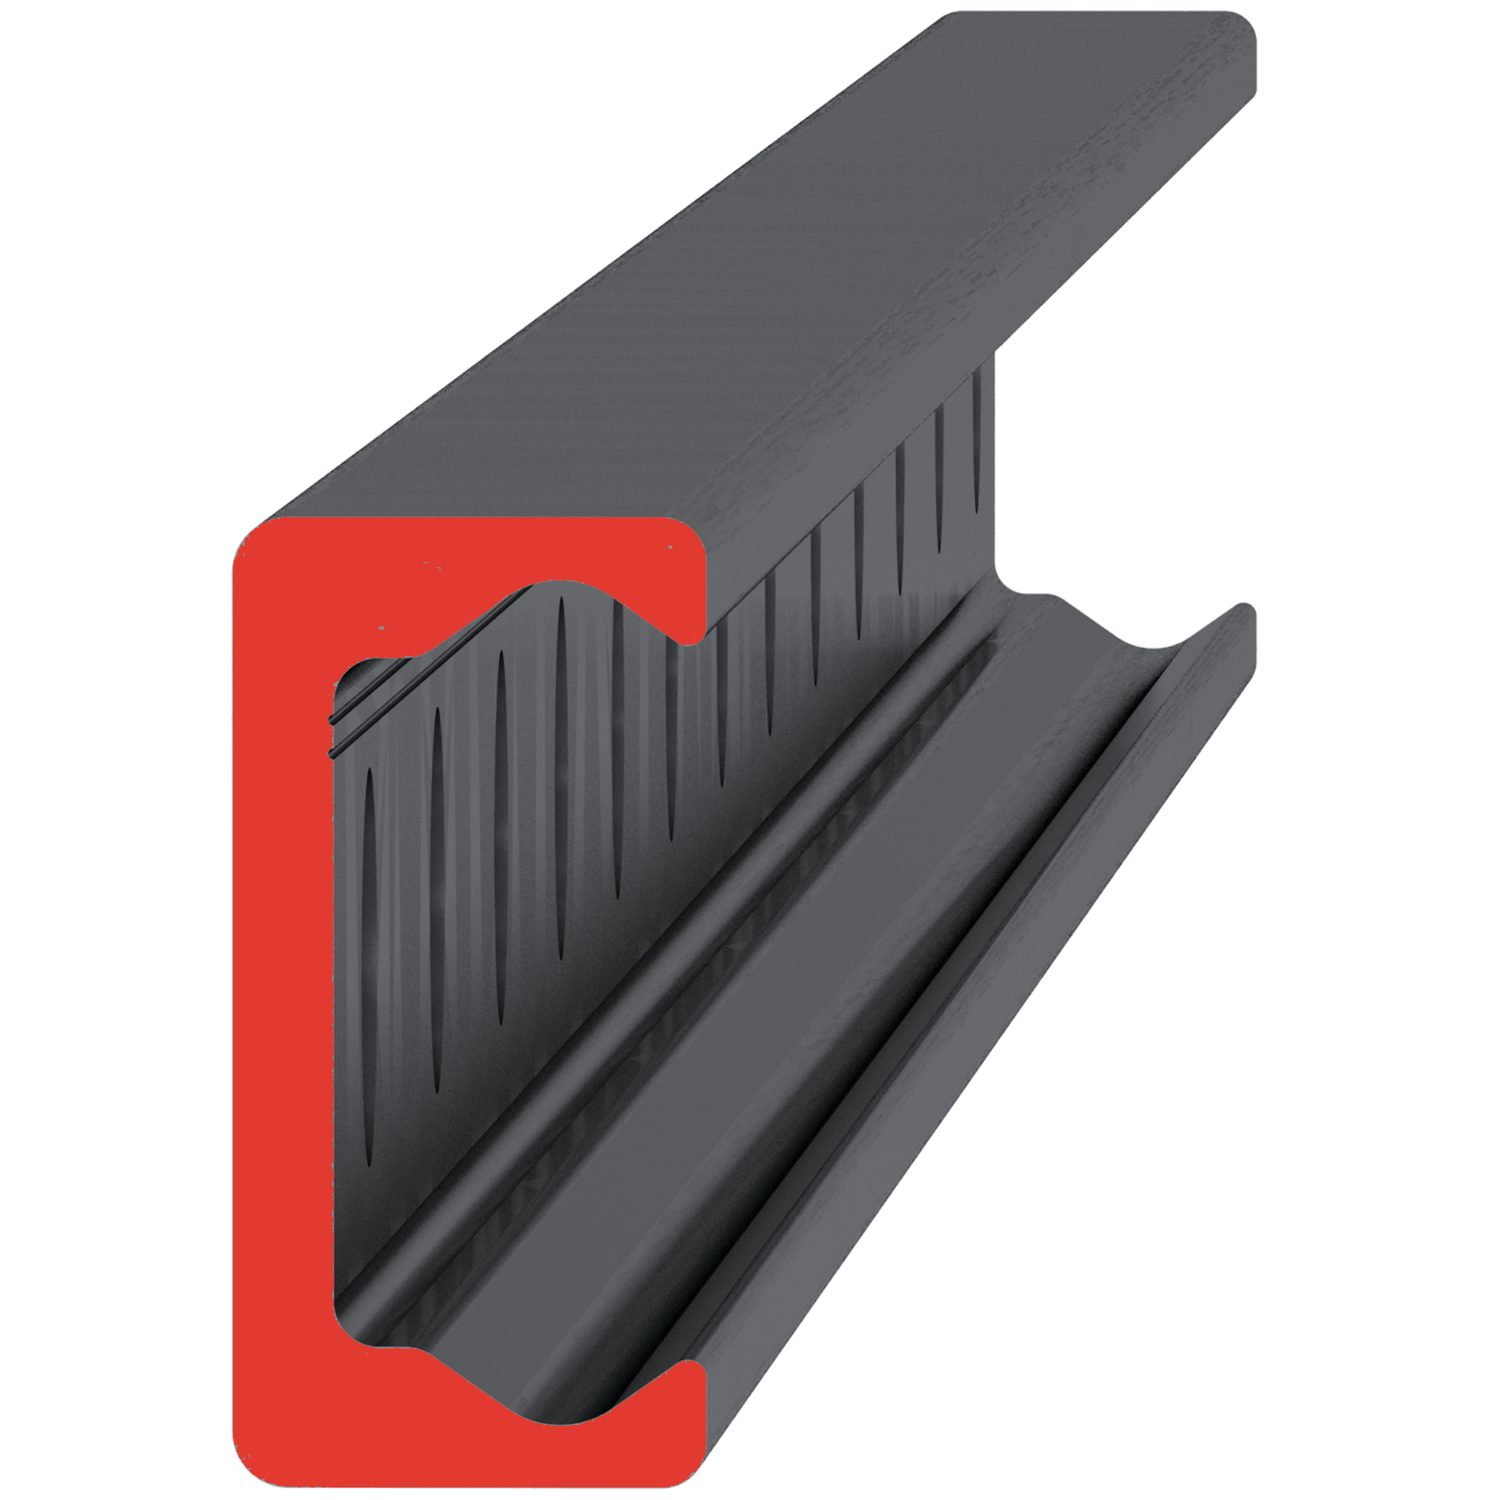 Product L1943.TL, Heavy Duty T Rail counterbored holes /